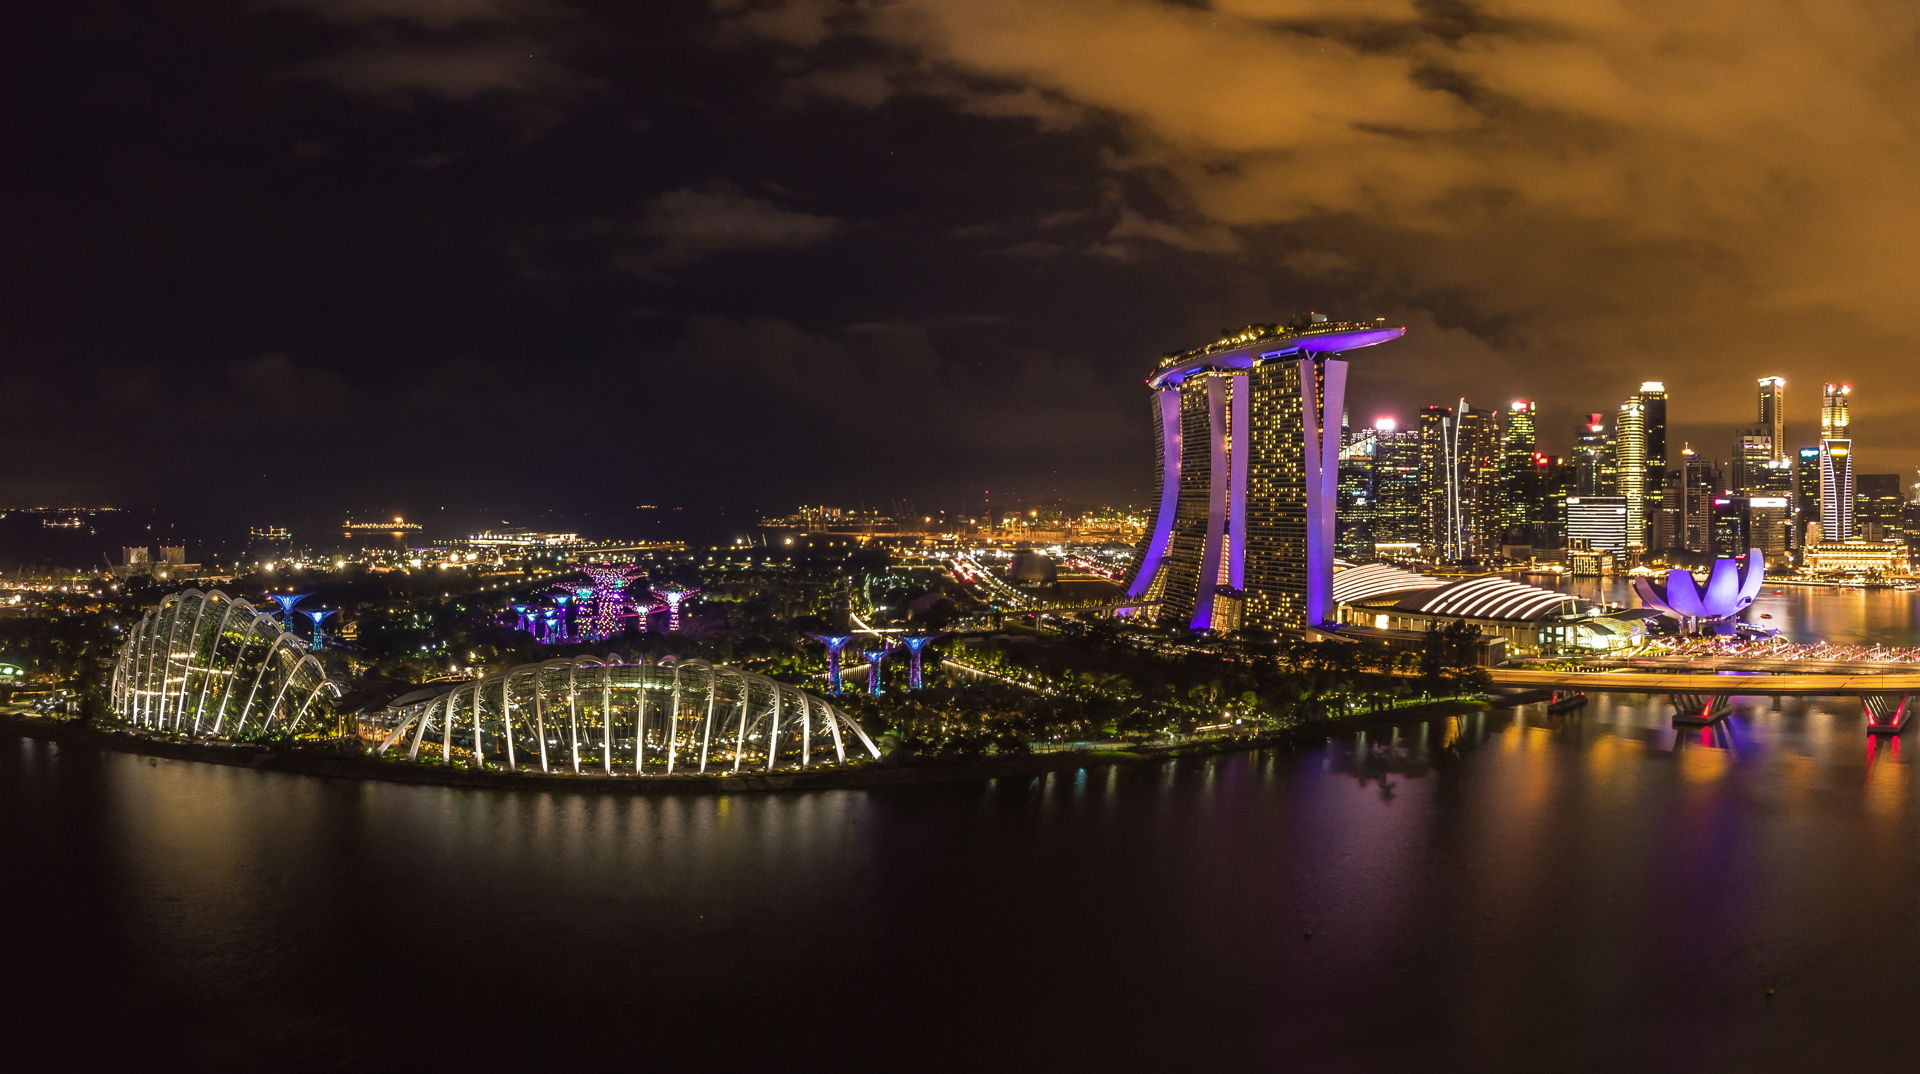 where to fly drone at singapore, singapore drone guidelines, best drone places singapore, singapore laws, singapore regulations, Singapore drone night, singapore aerial night, singapore gardens by the bay at night, singapore marina bay sands night, singapore blue hour drone, singapore city center, singapore downtown